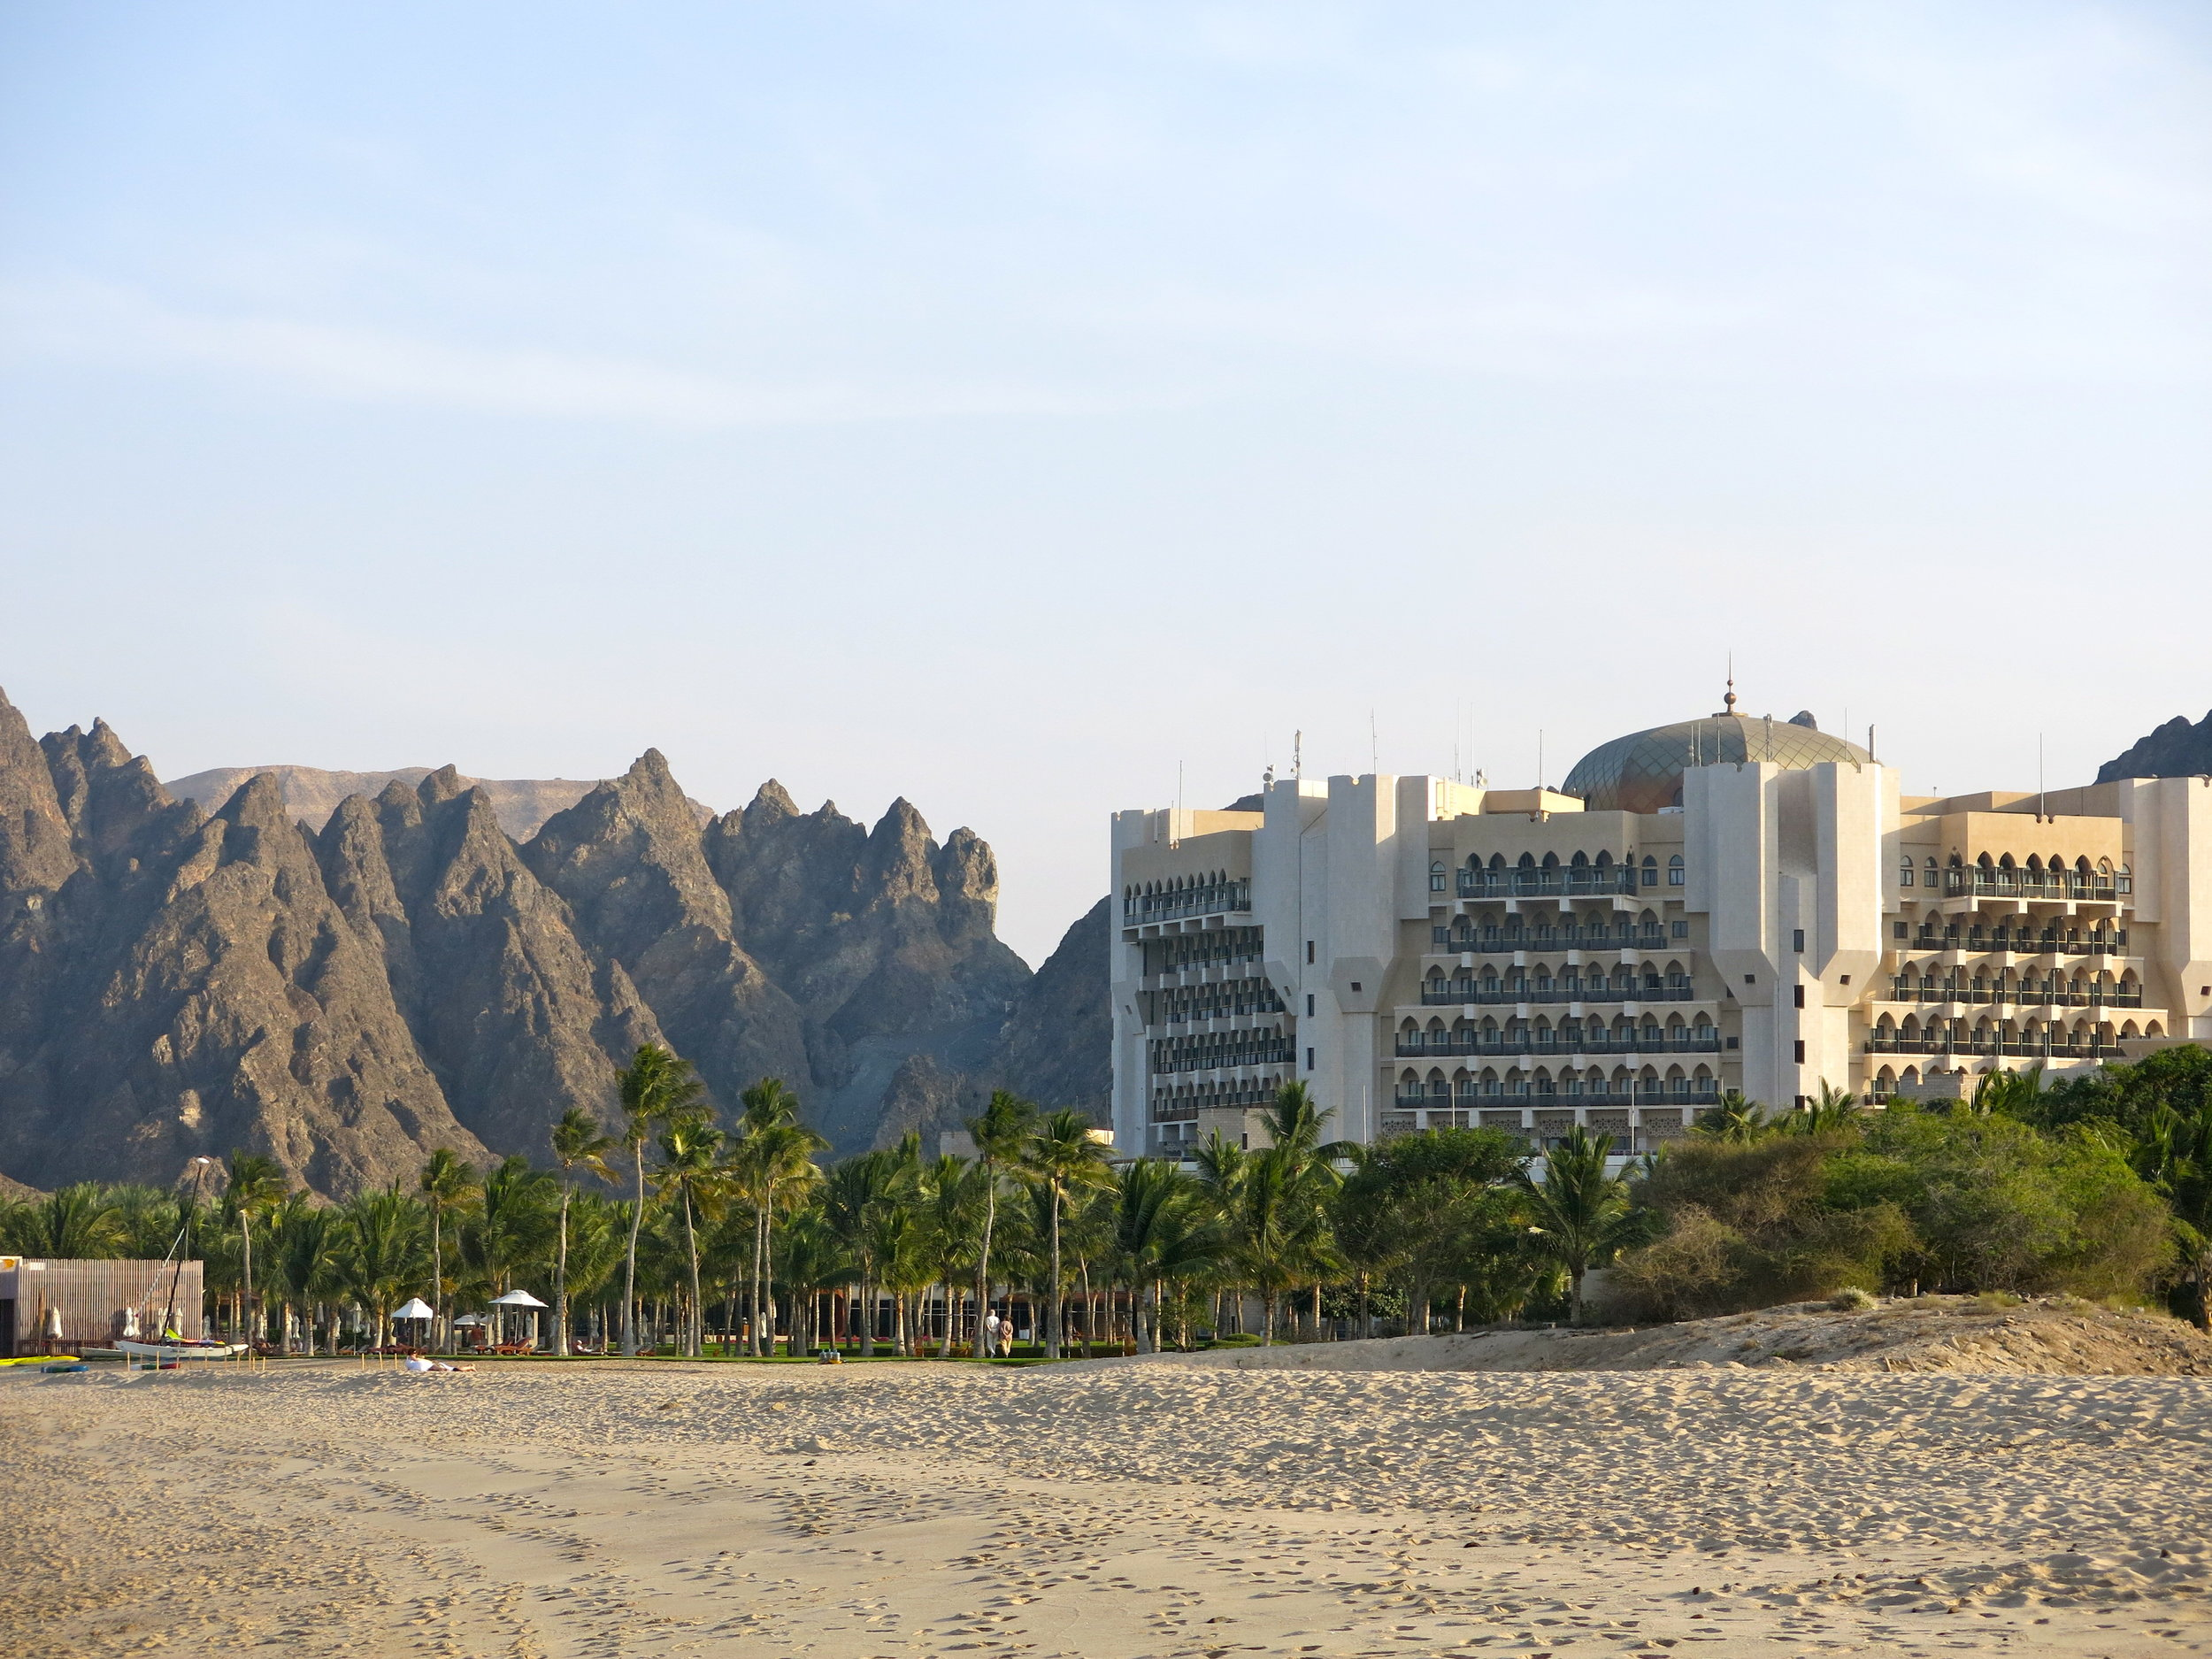 The Al-Bustan palace has its own sandy beach and a private garden full of palm trees